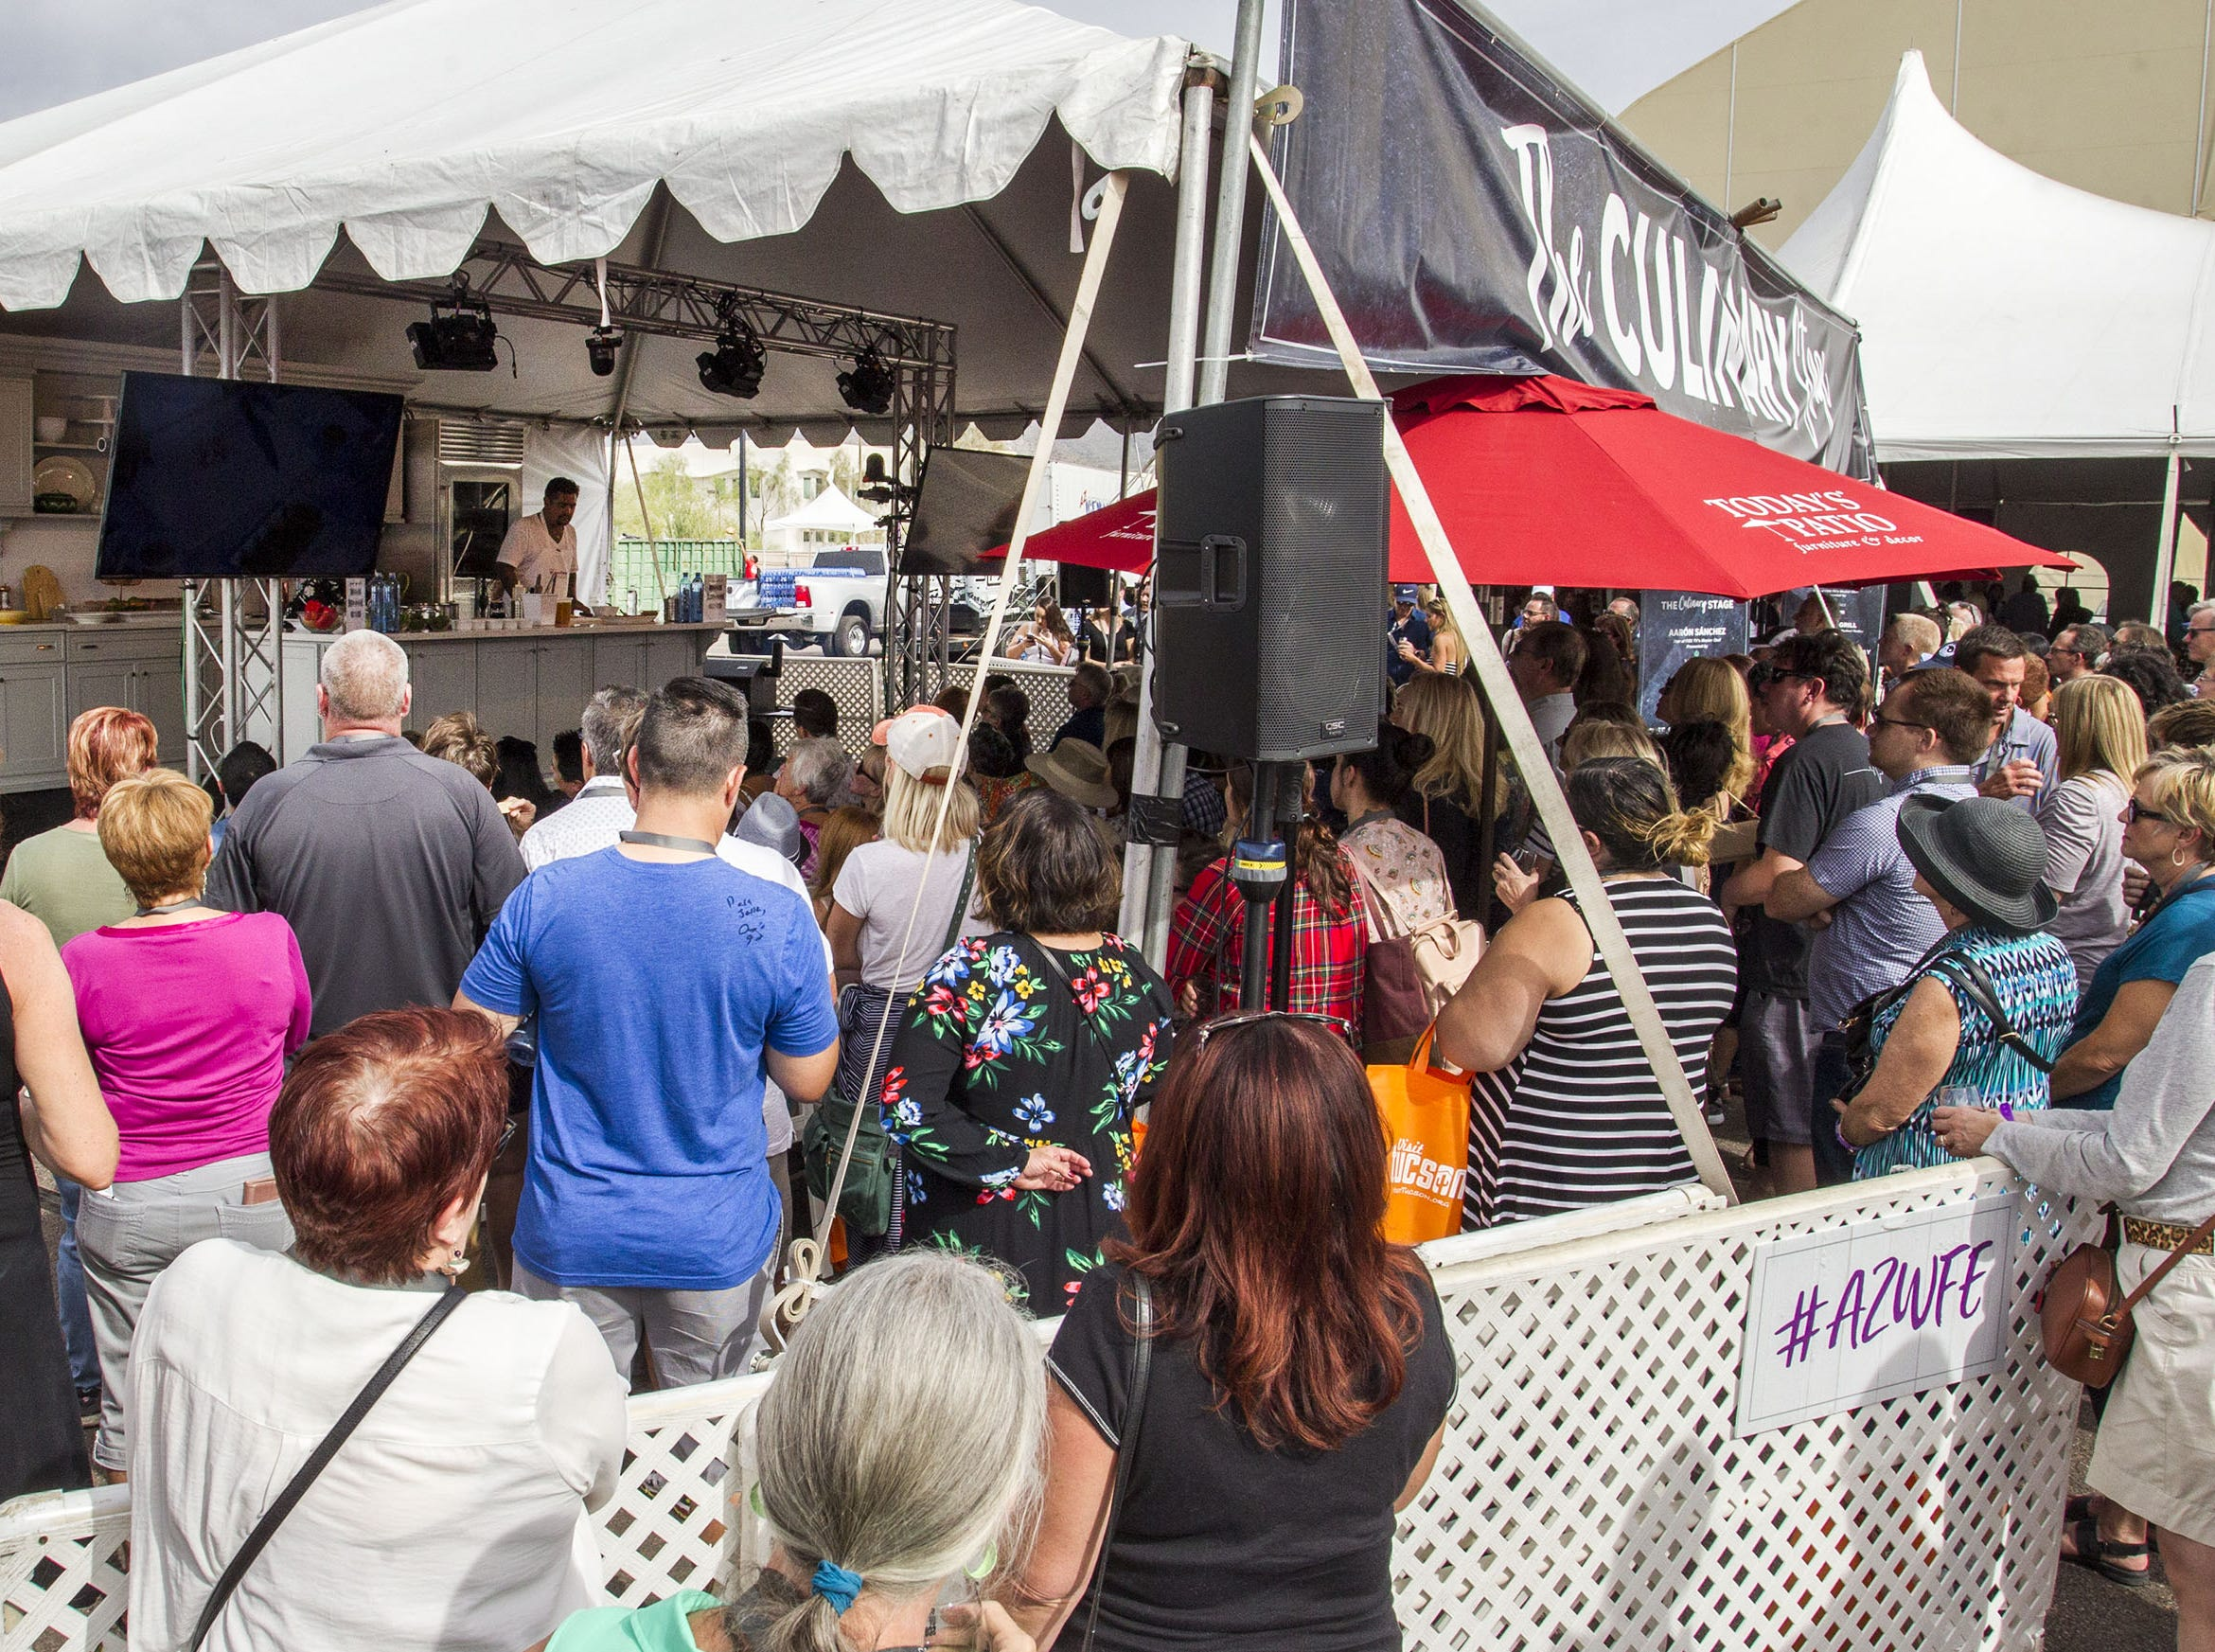 Standing room only for Chef Aarón Sánchez as he does a cooking demonstration on the Culinary Stage during the azcentral Wine & Food Experience at WestWorld of Scottsdale, Sunday, Nov. 4, 2018.